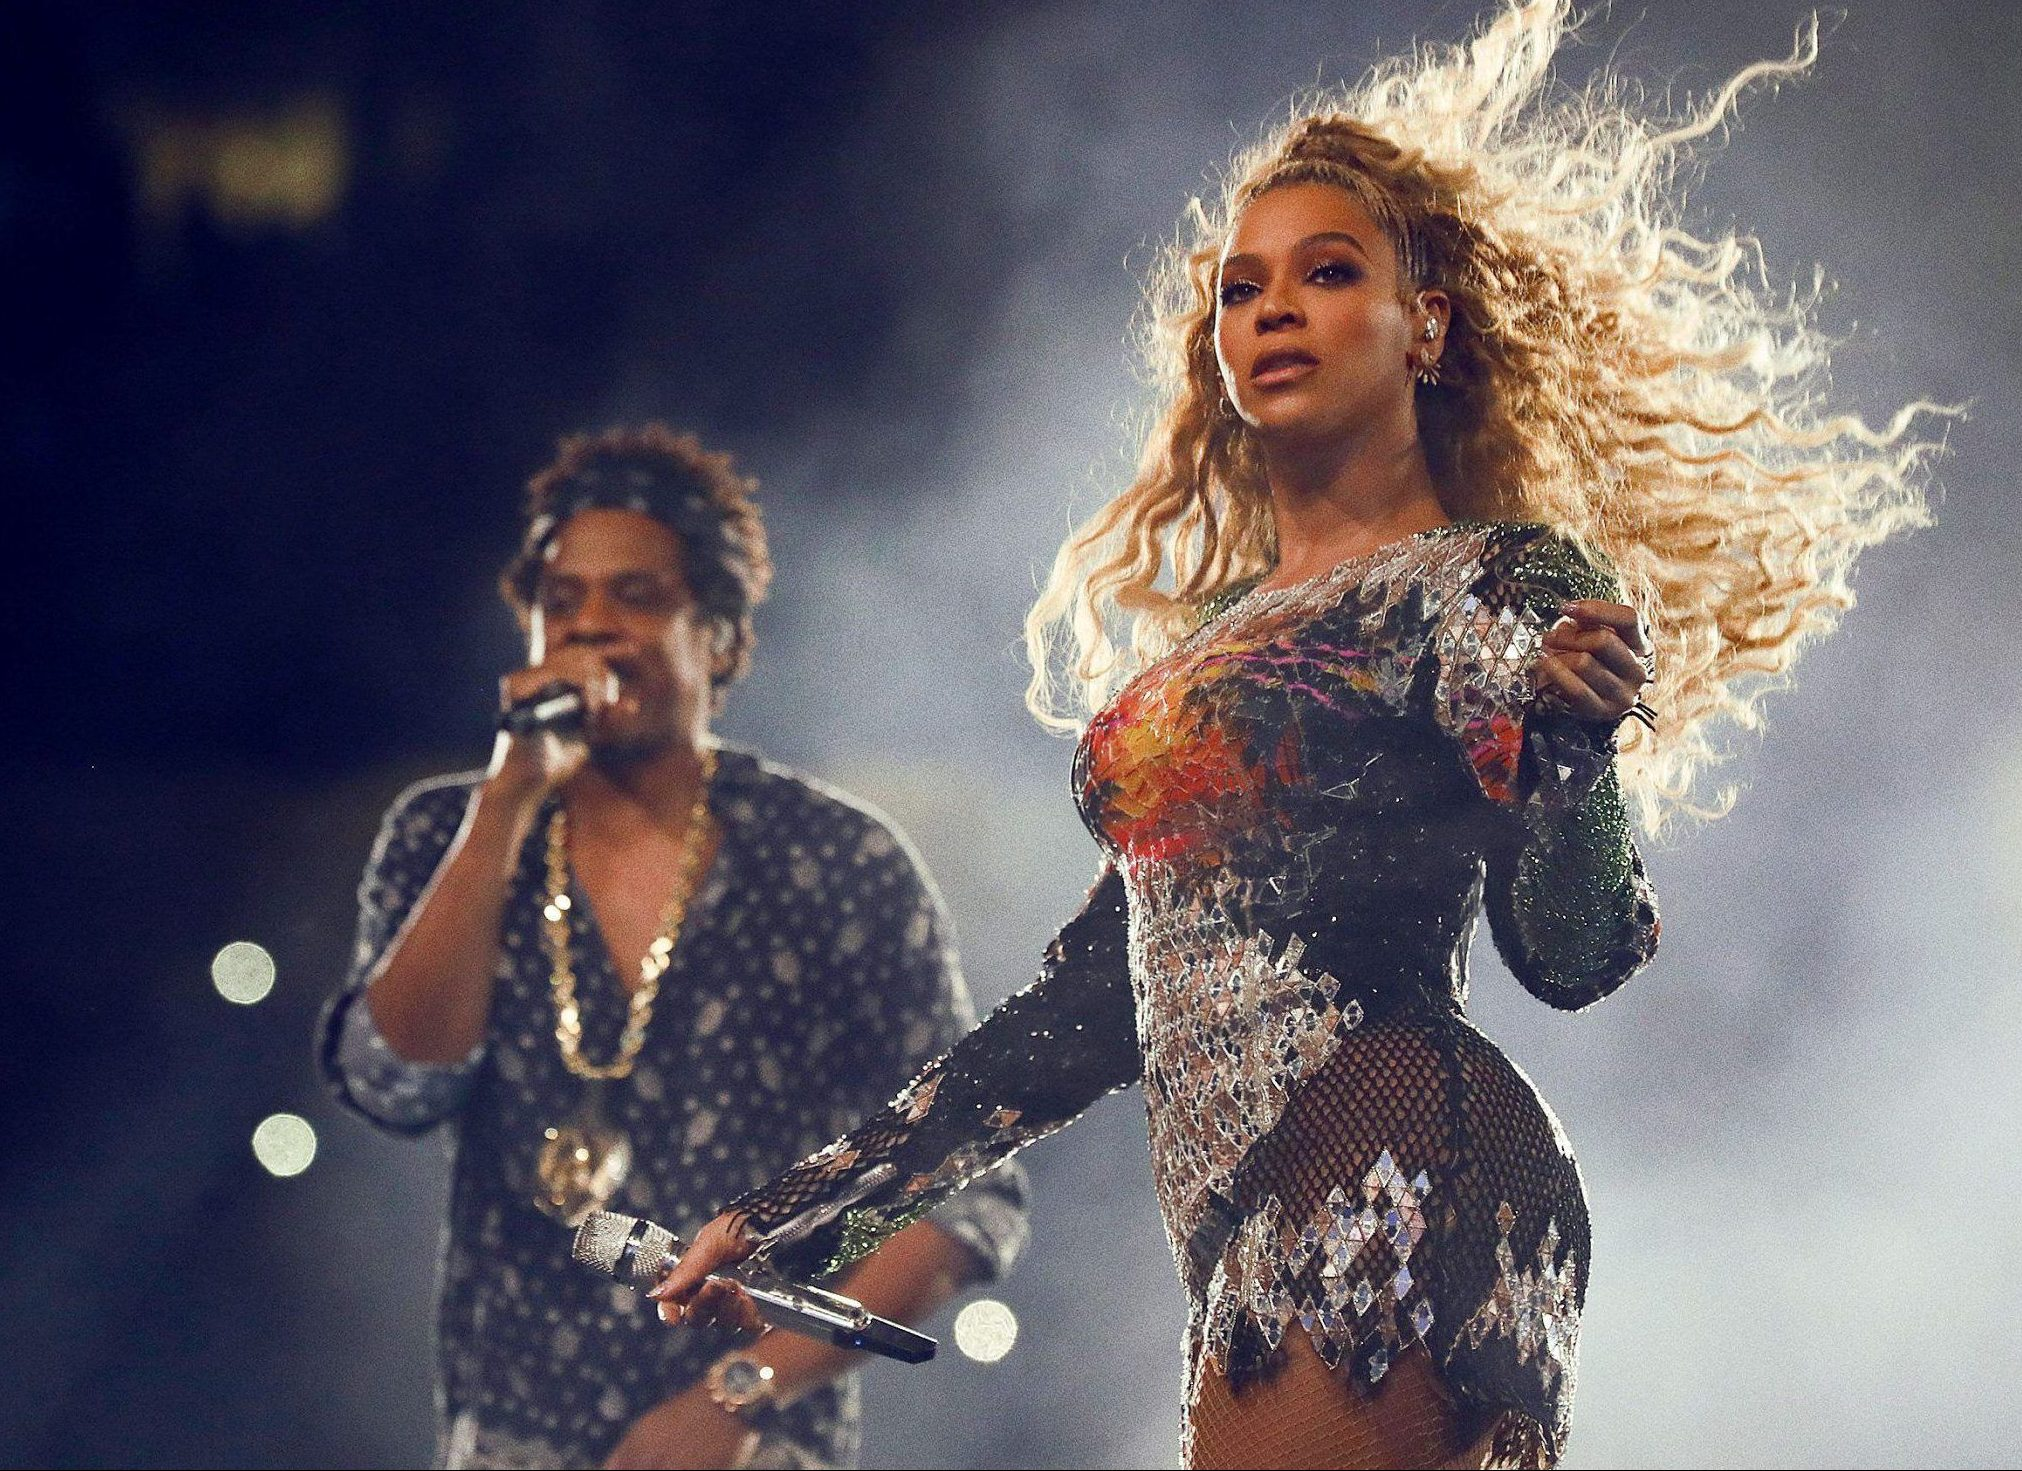 Beyonce and Jay-Z stage invader 'charged with simple battery and disorderly conduct' after rushing the stage in Atlanta